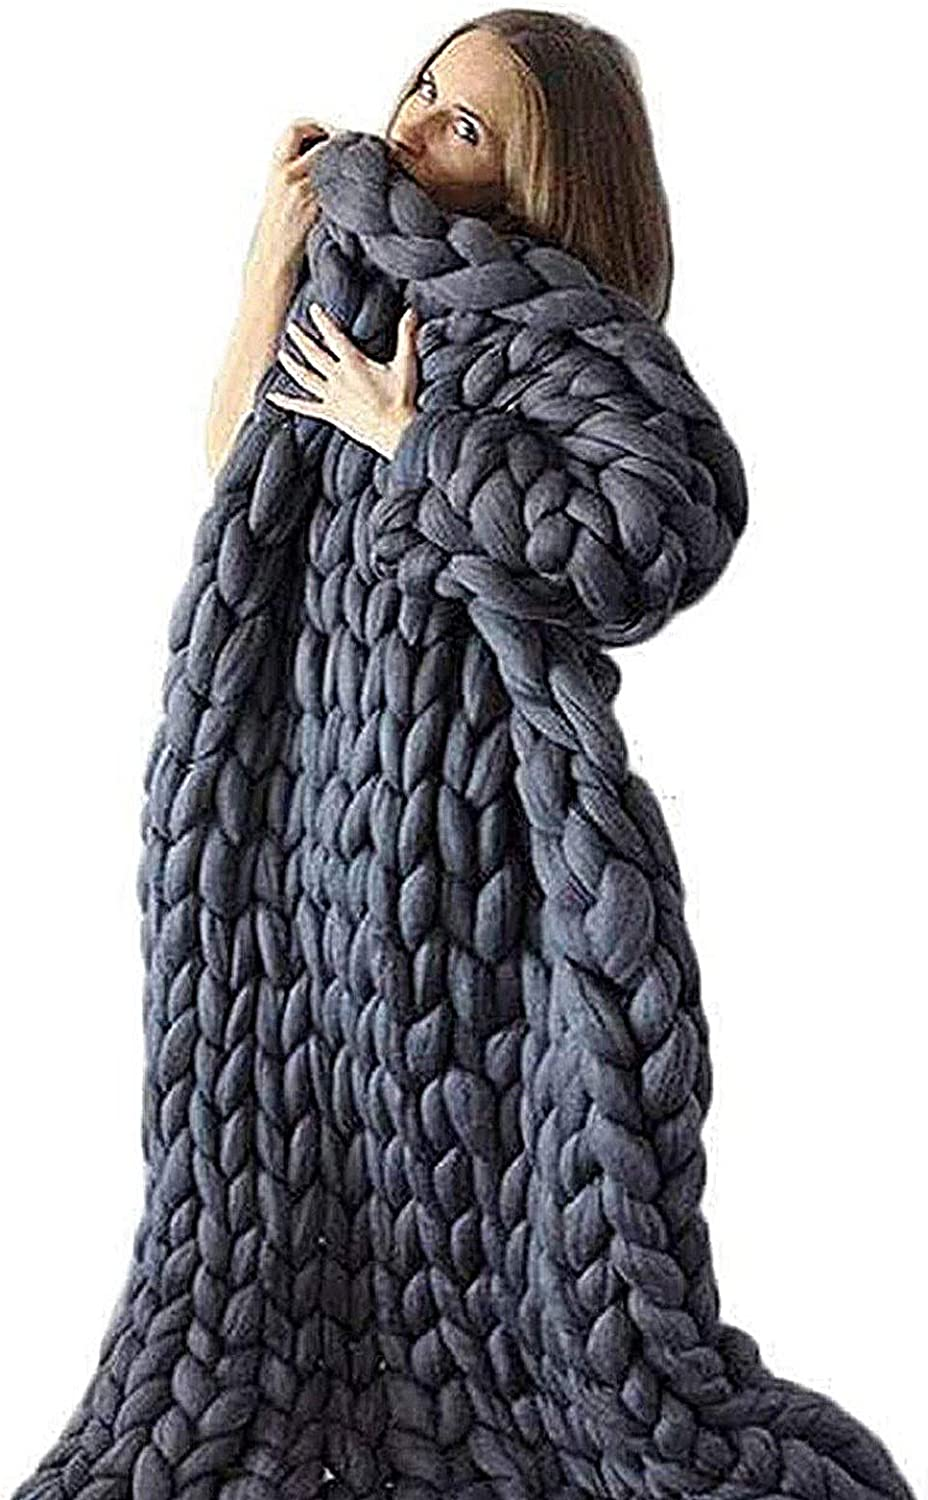 ZCXBHD Genuine Limited Special Price Hand Knitted Yarn Throw Chunky Conditioning Air B Blanket